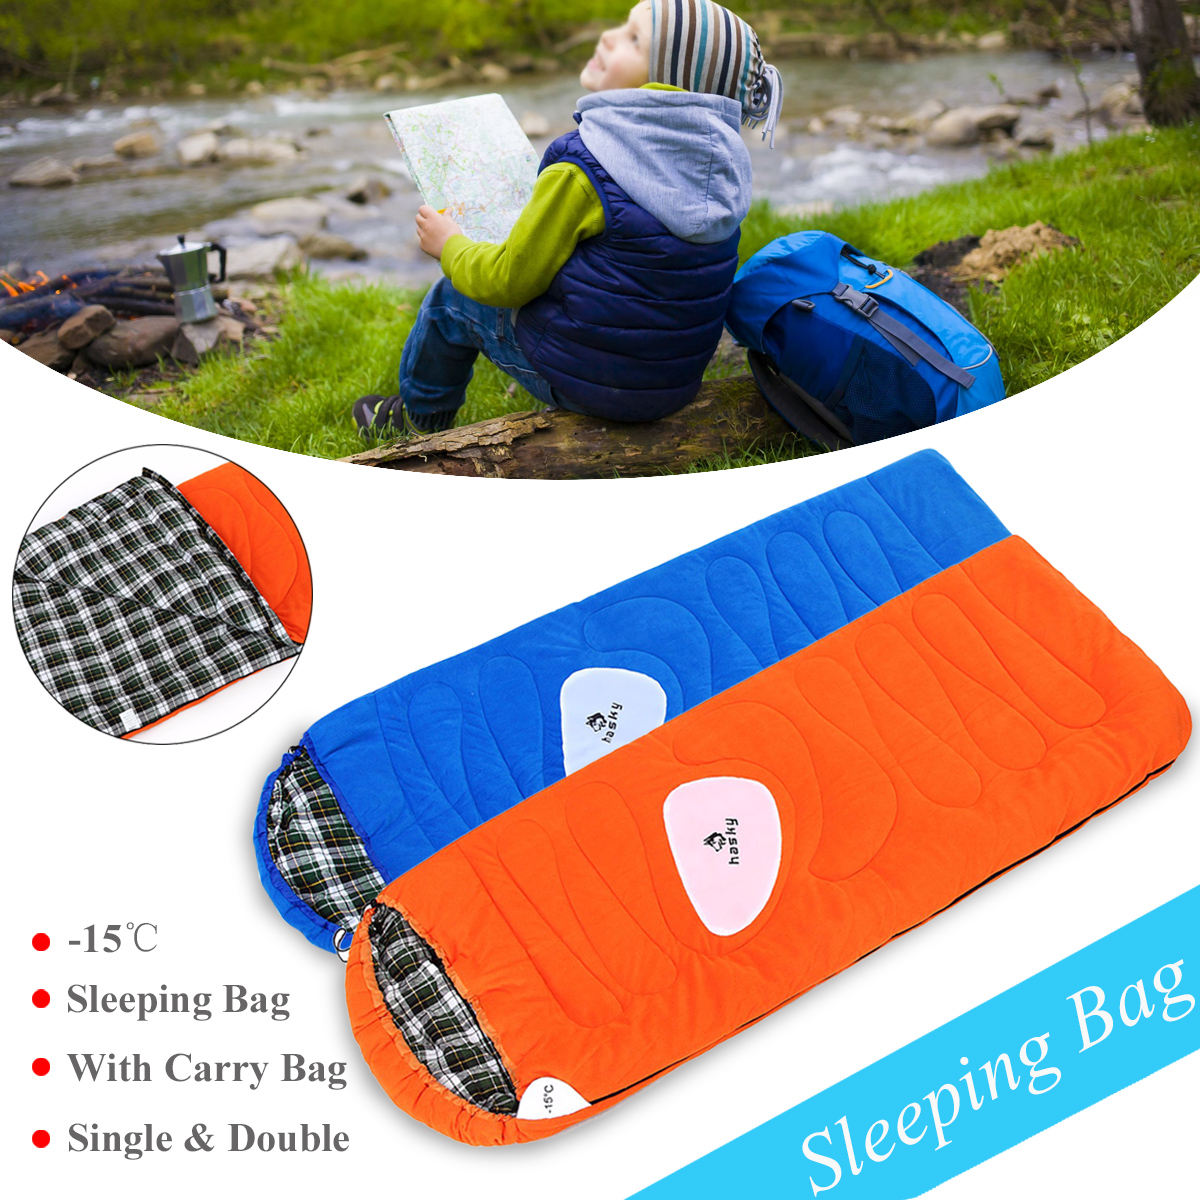 Outdoor Waterproof Camping Hiking Sleeping Bag Portable Folding Travel Adult Sleep Bag Warm And Soft